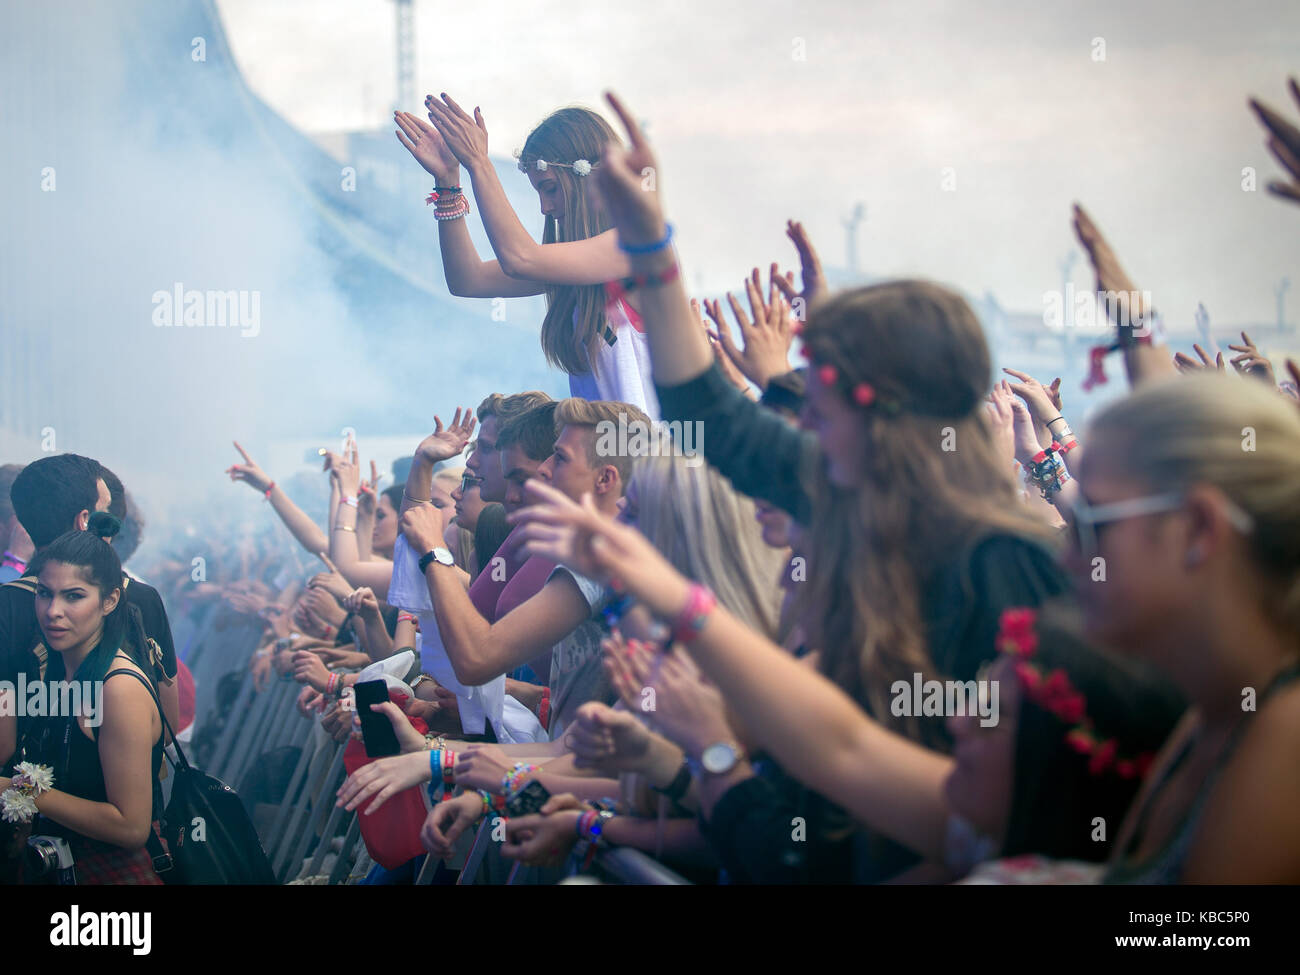 Enthusiastic and energetic music fans go crazy at a concert with the Norwegian DJ and electronic producer Kygo who - Stock Image